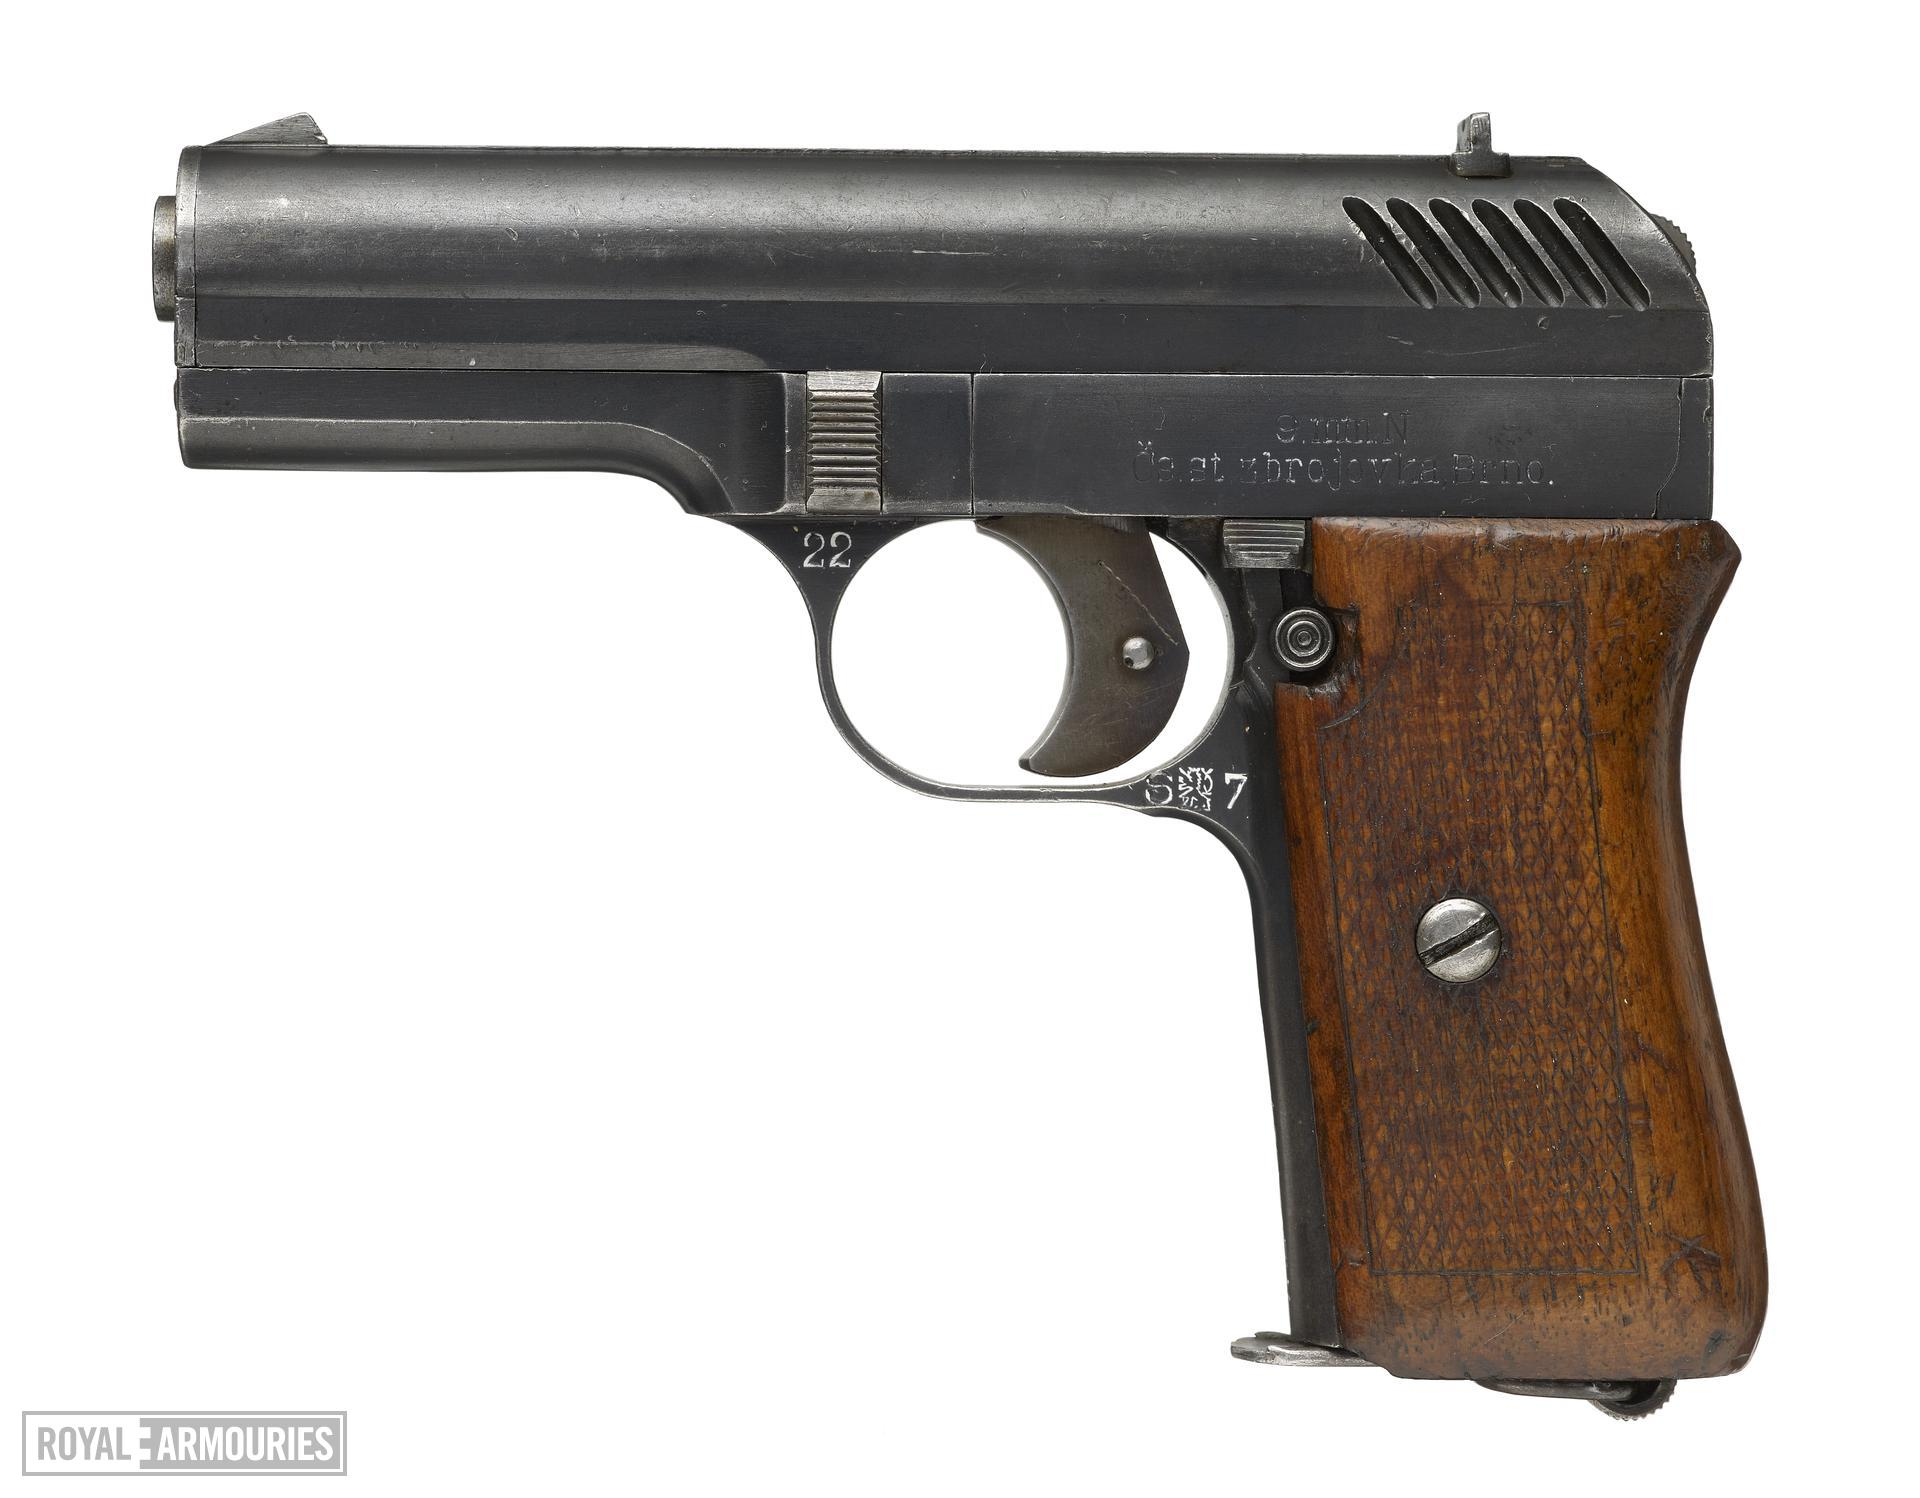 ZB VZ22 centrefire self loading pistol, made by Brno, Czechoslovakia. (PR.2048)